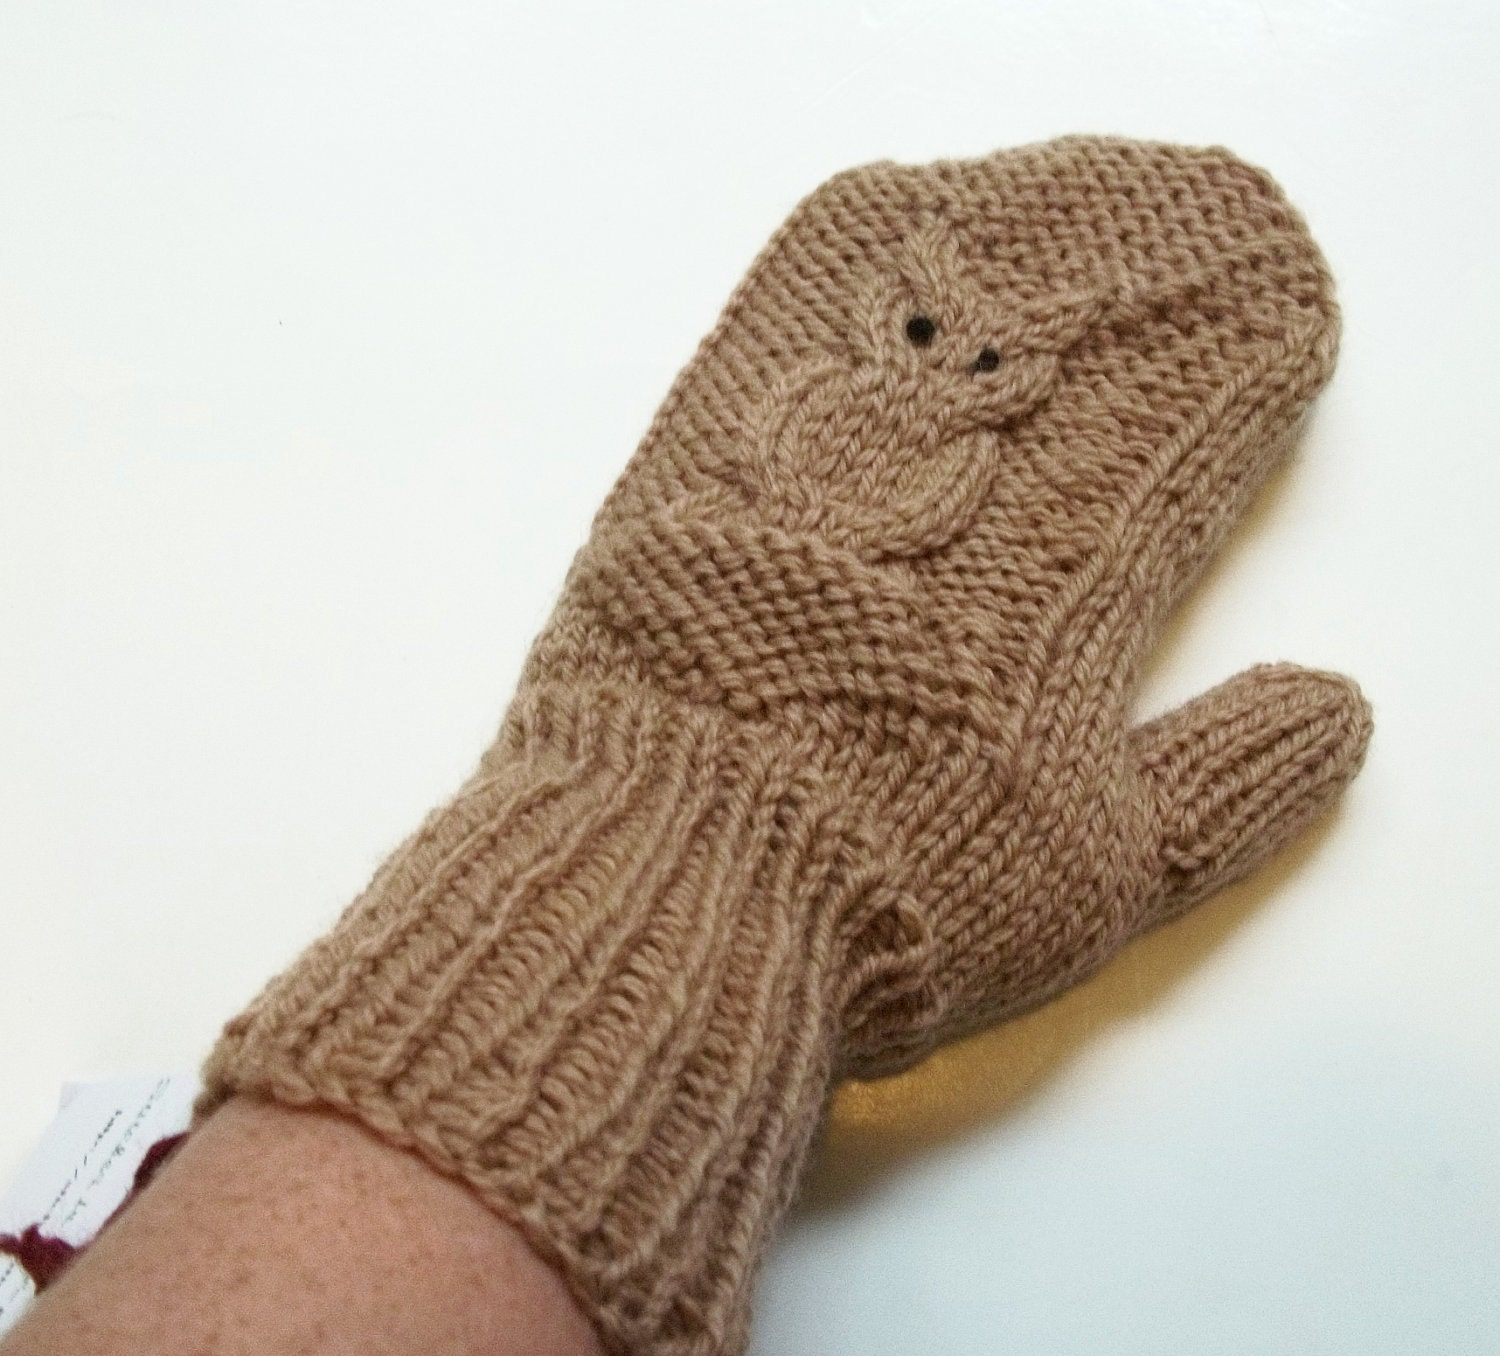 Owl Mittens Hand Knit Wool Mittens for Women in Brown